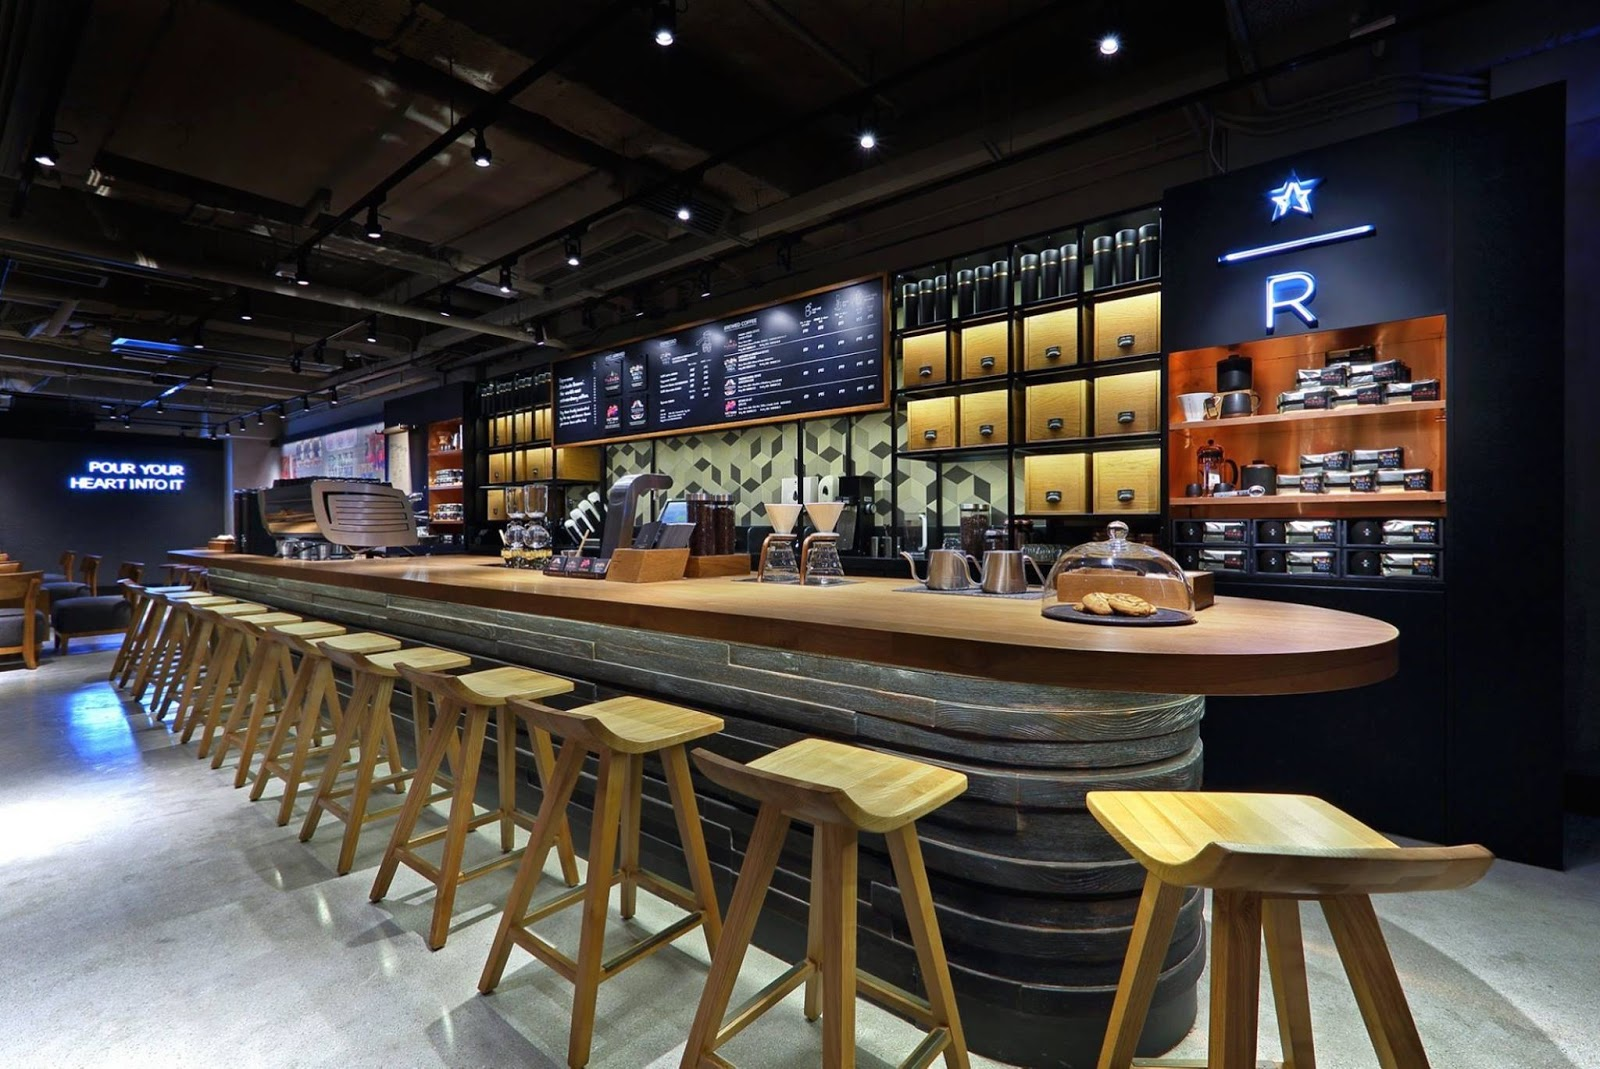 starbucks coffee company hong kong essay In hong kong and china, coffee is still more of a social event than a daily  necessity, said michael wu, 34,  financial analysis of starbucks corporation  essay.